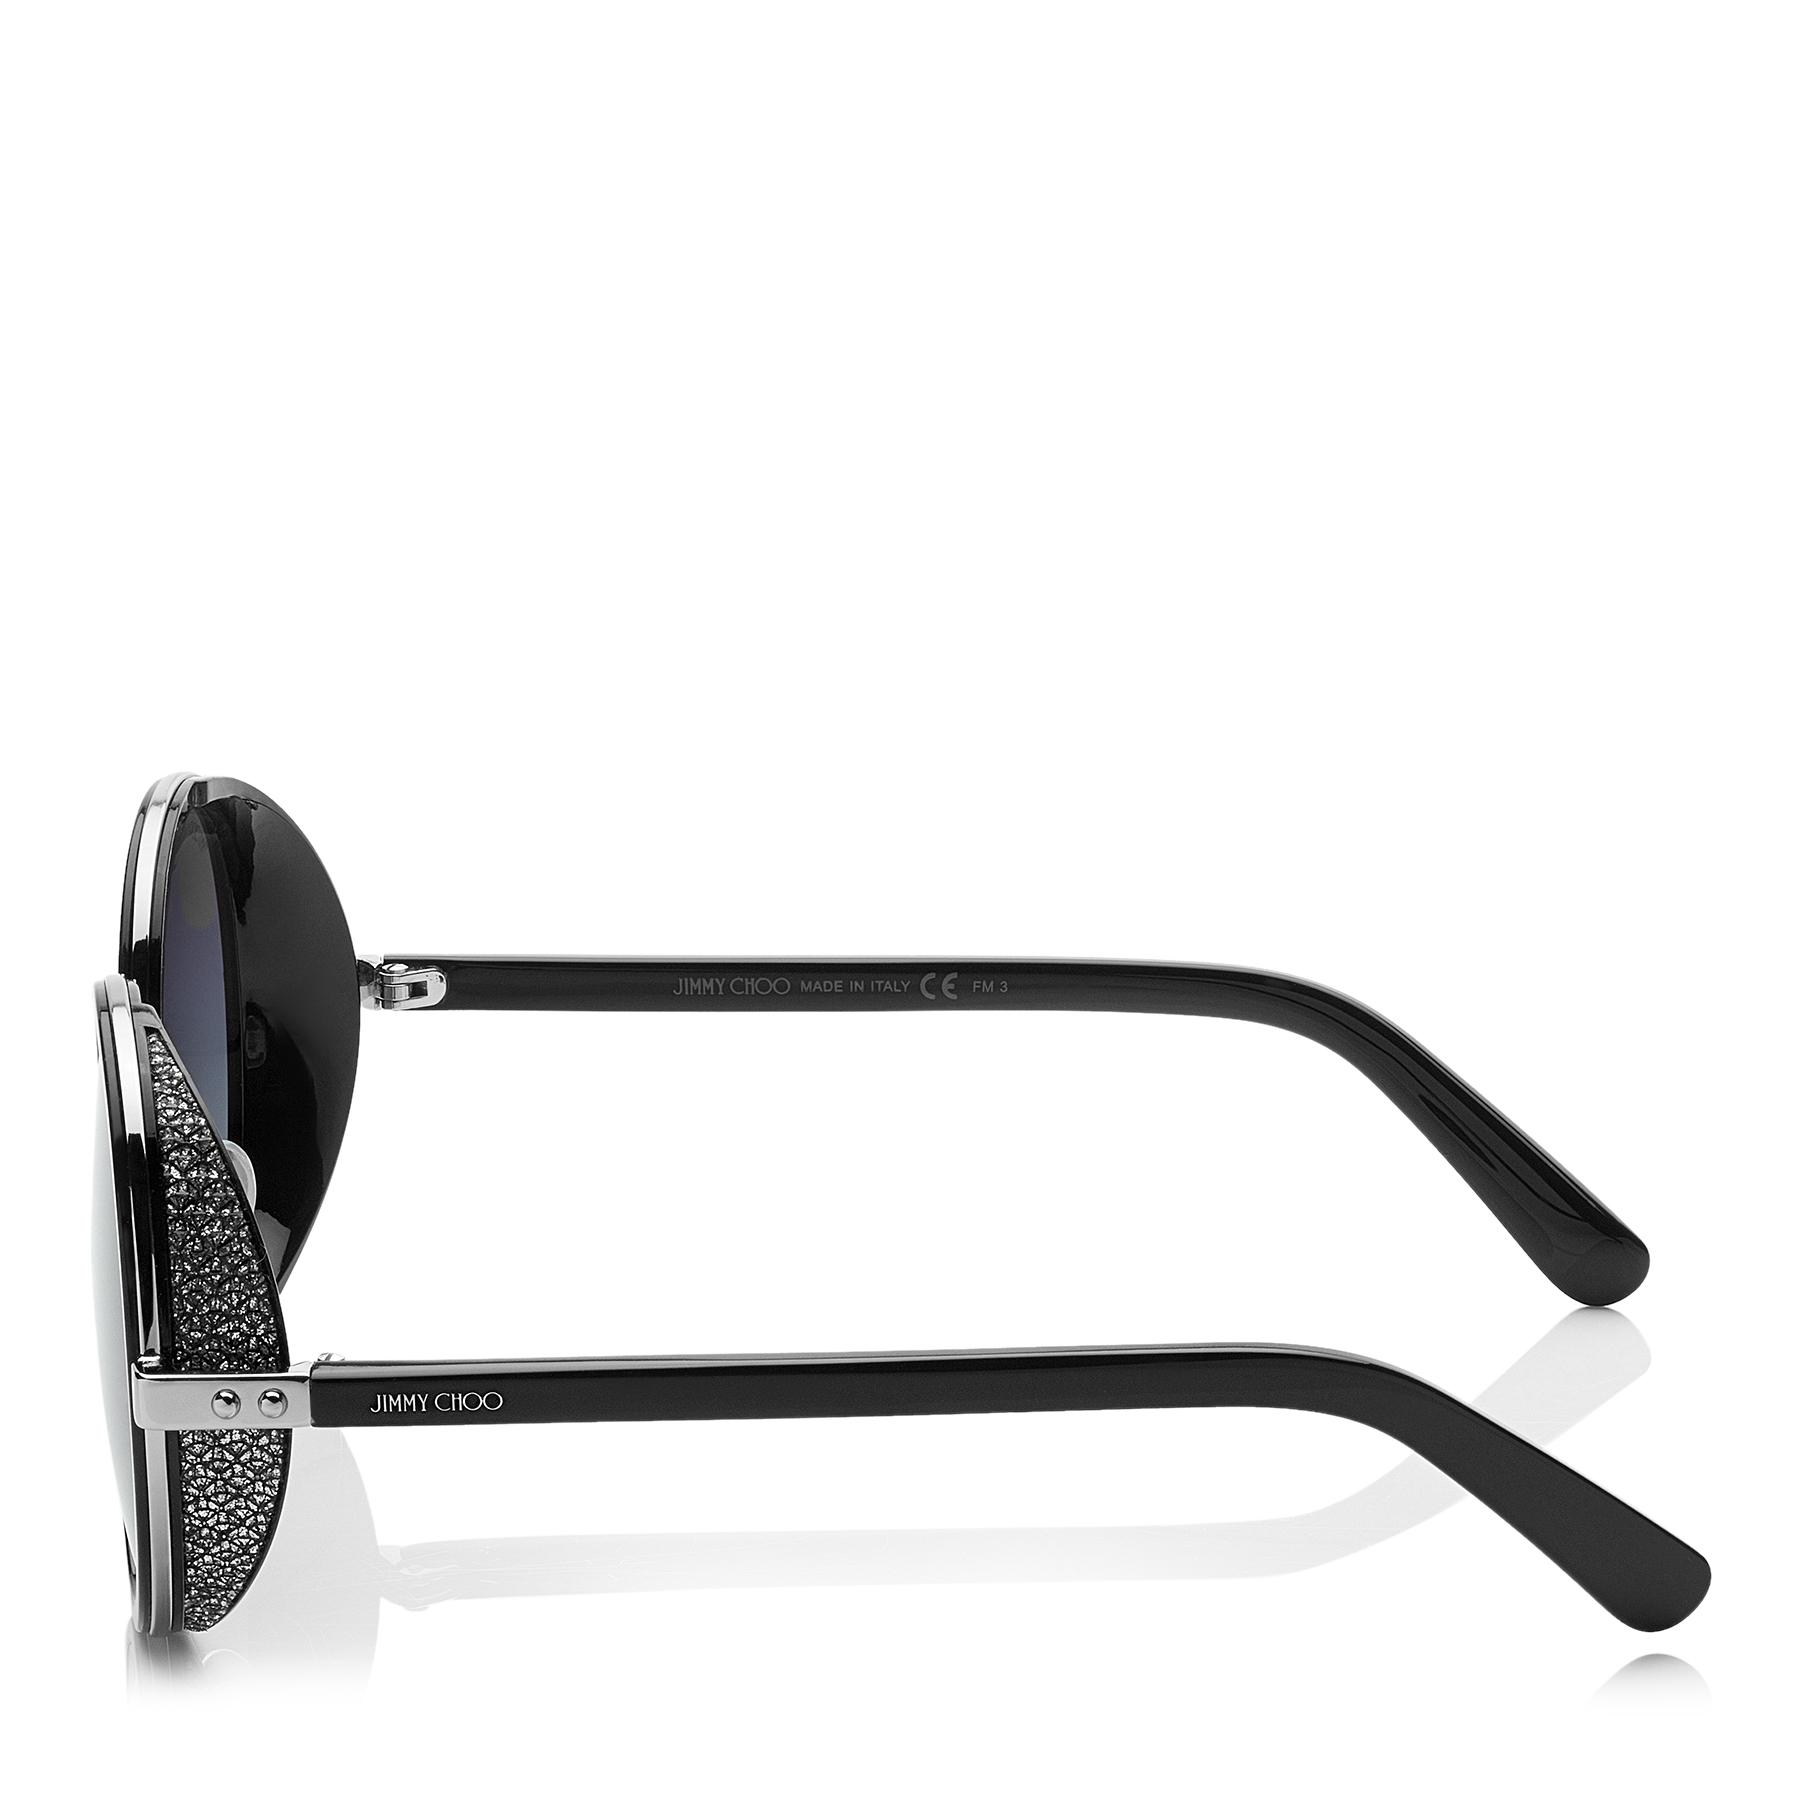 f9d2a726266 Jimmy Choo - Multicolor Andie Black Acetate Round Framed Sunglasses With  Silver Lurex Detailing - Lyst. View fullscreen